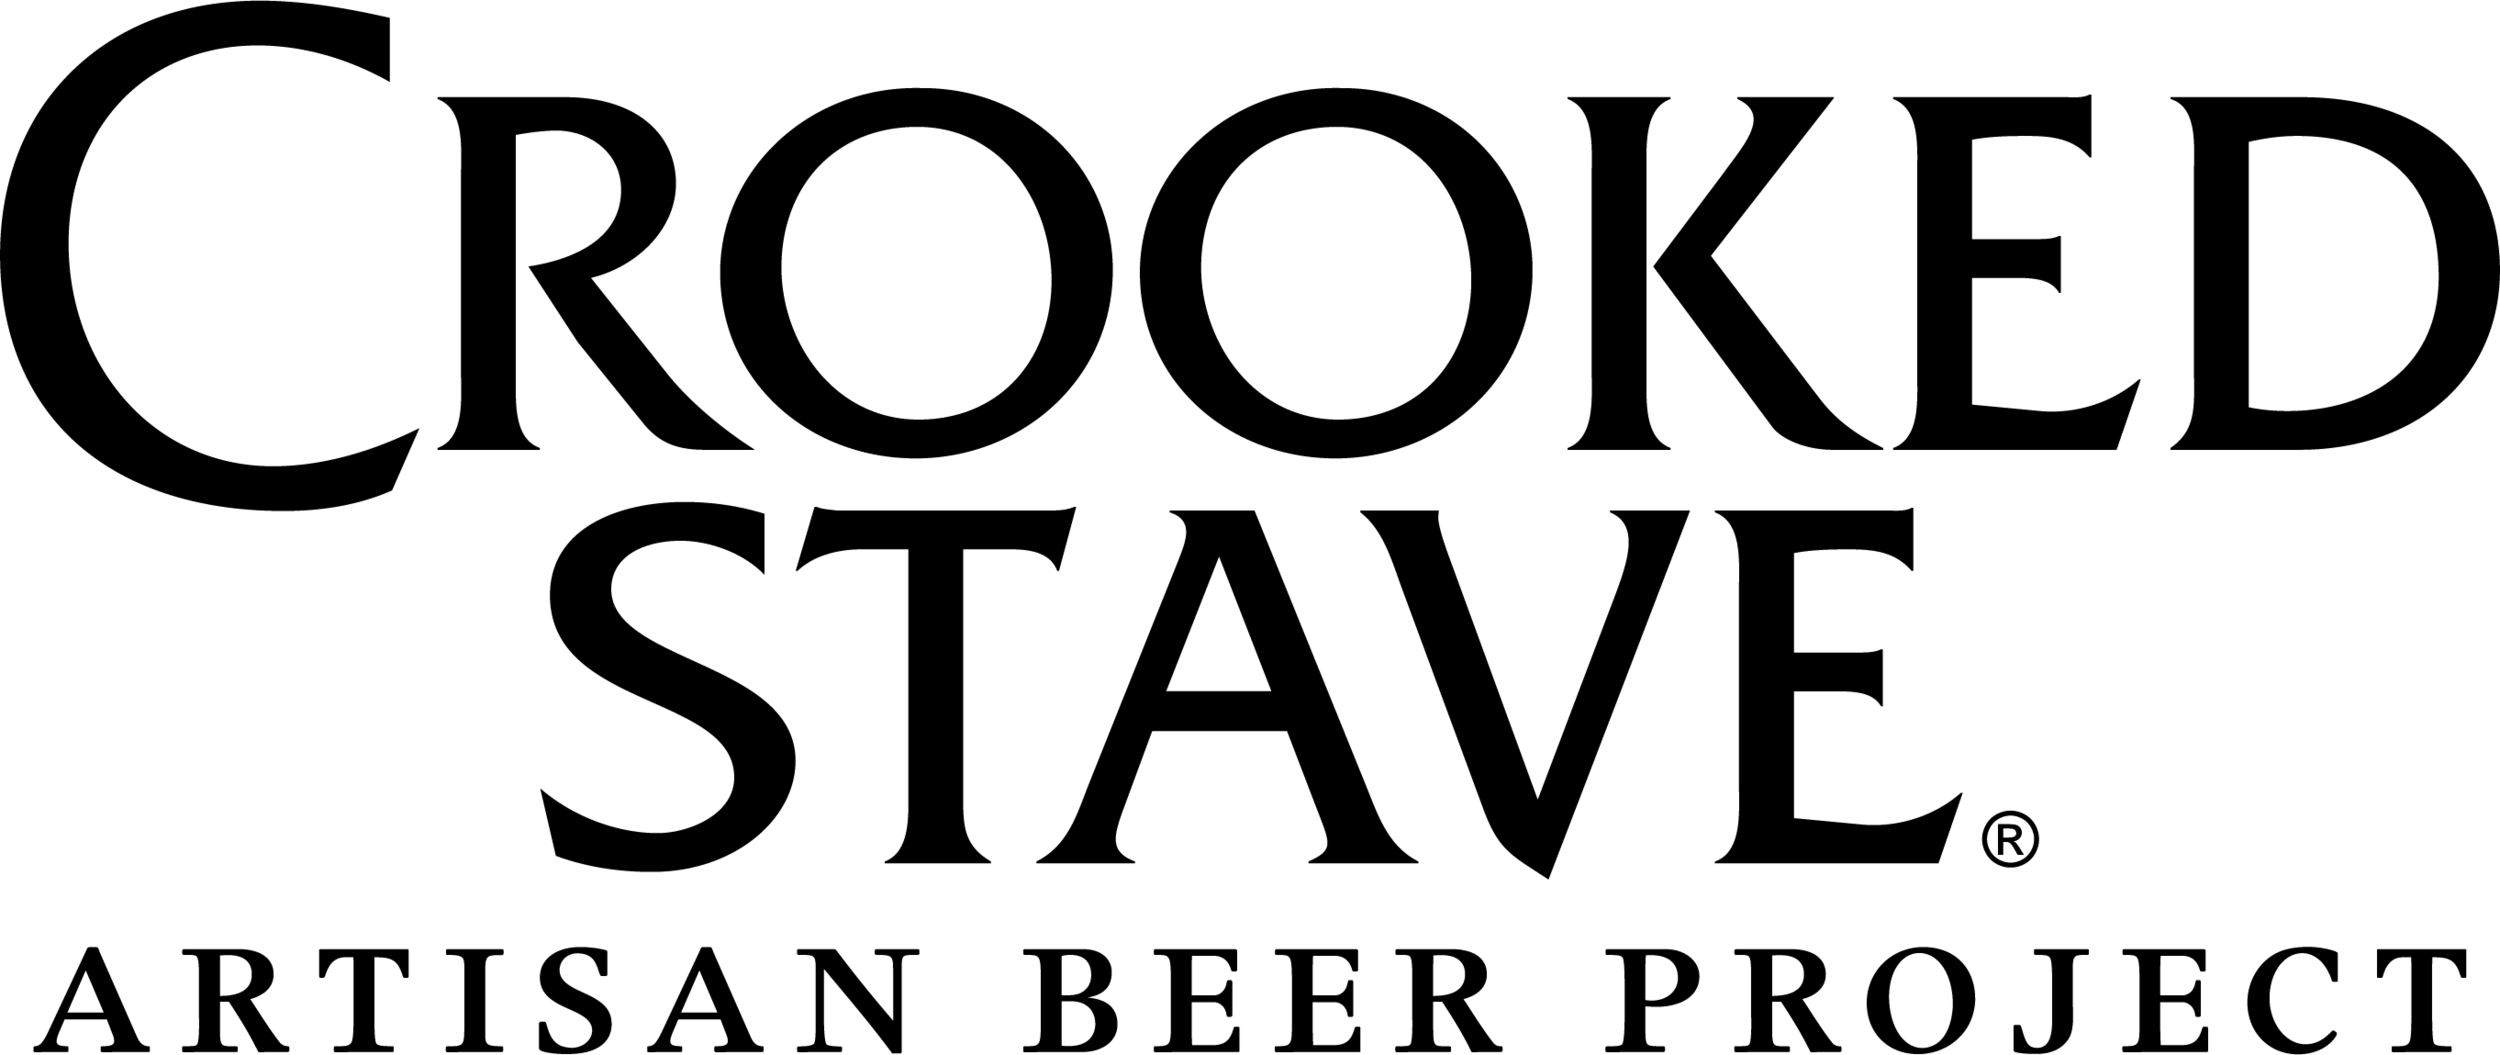 Logo_NoTexture_Black.png